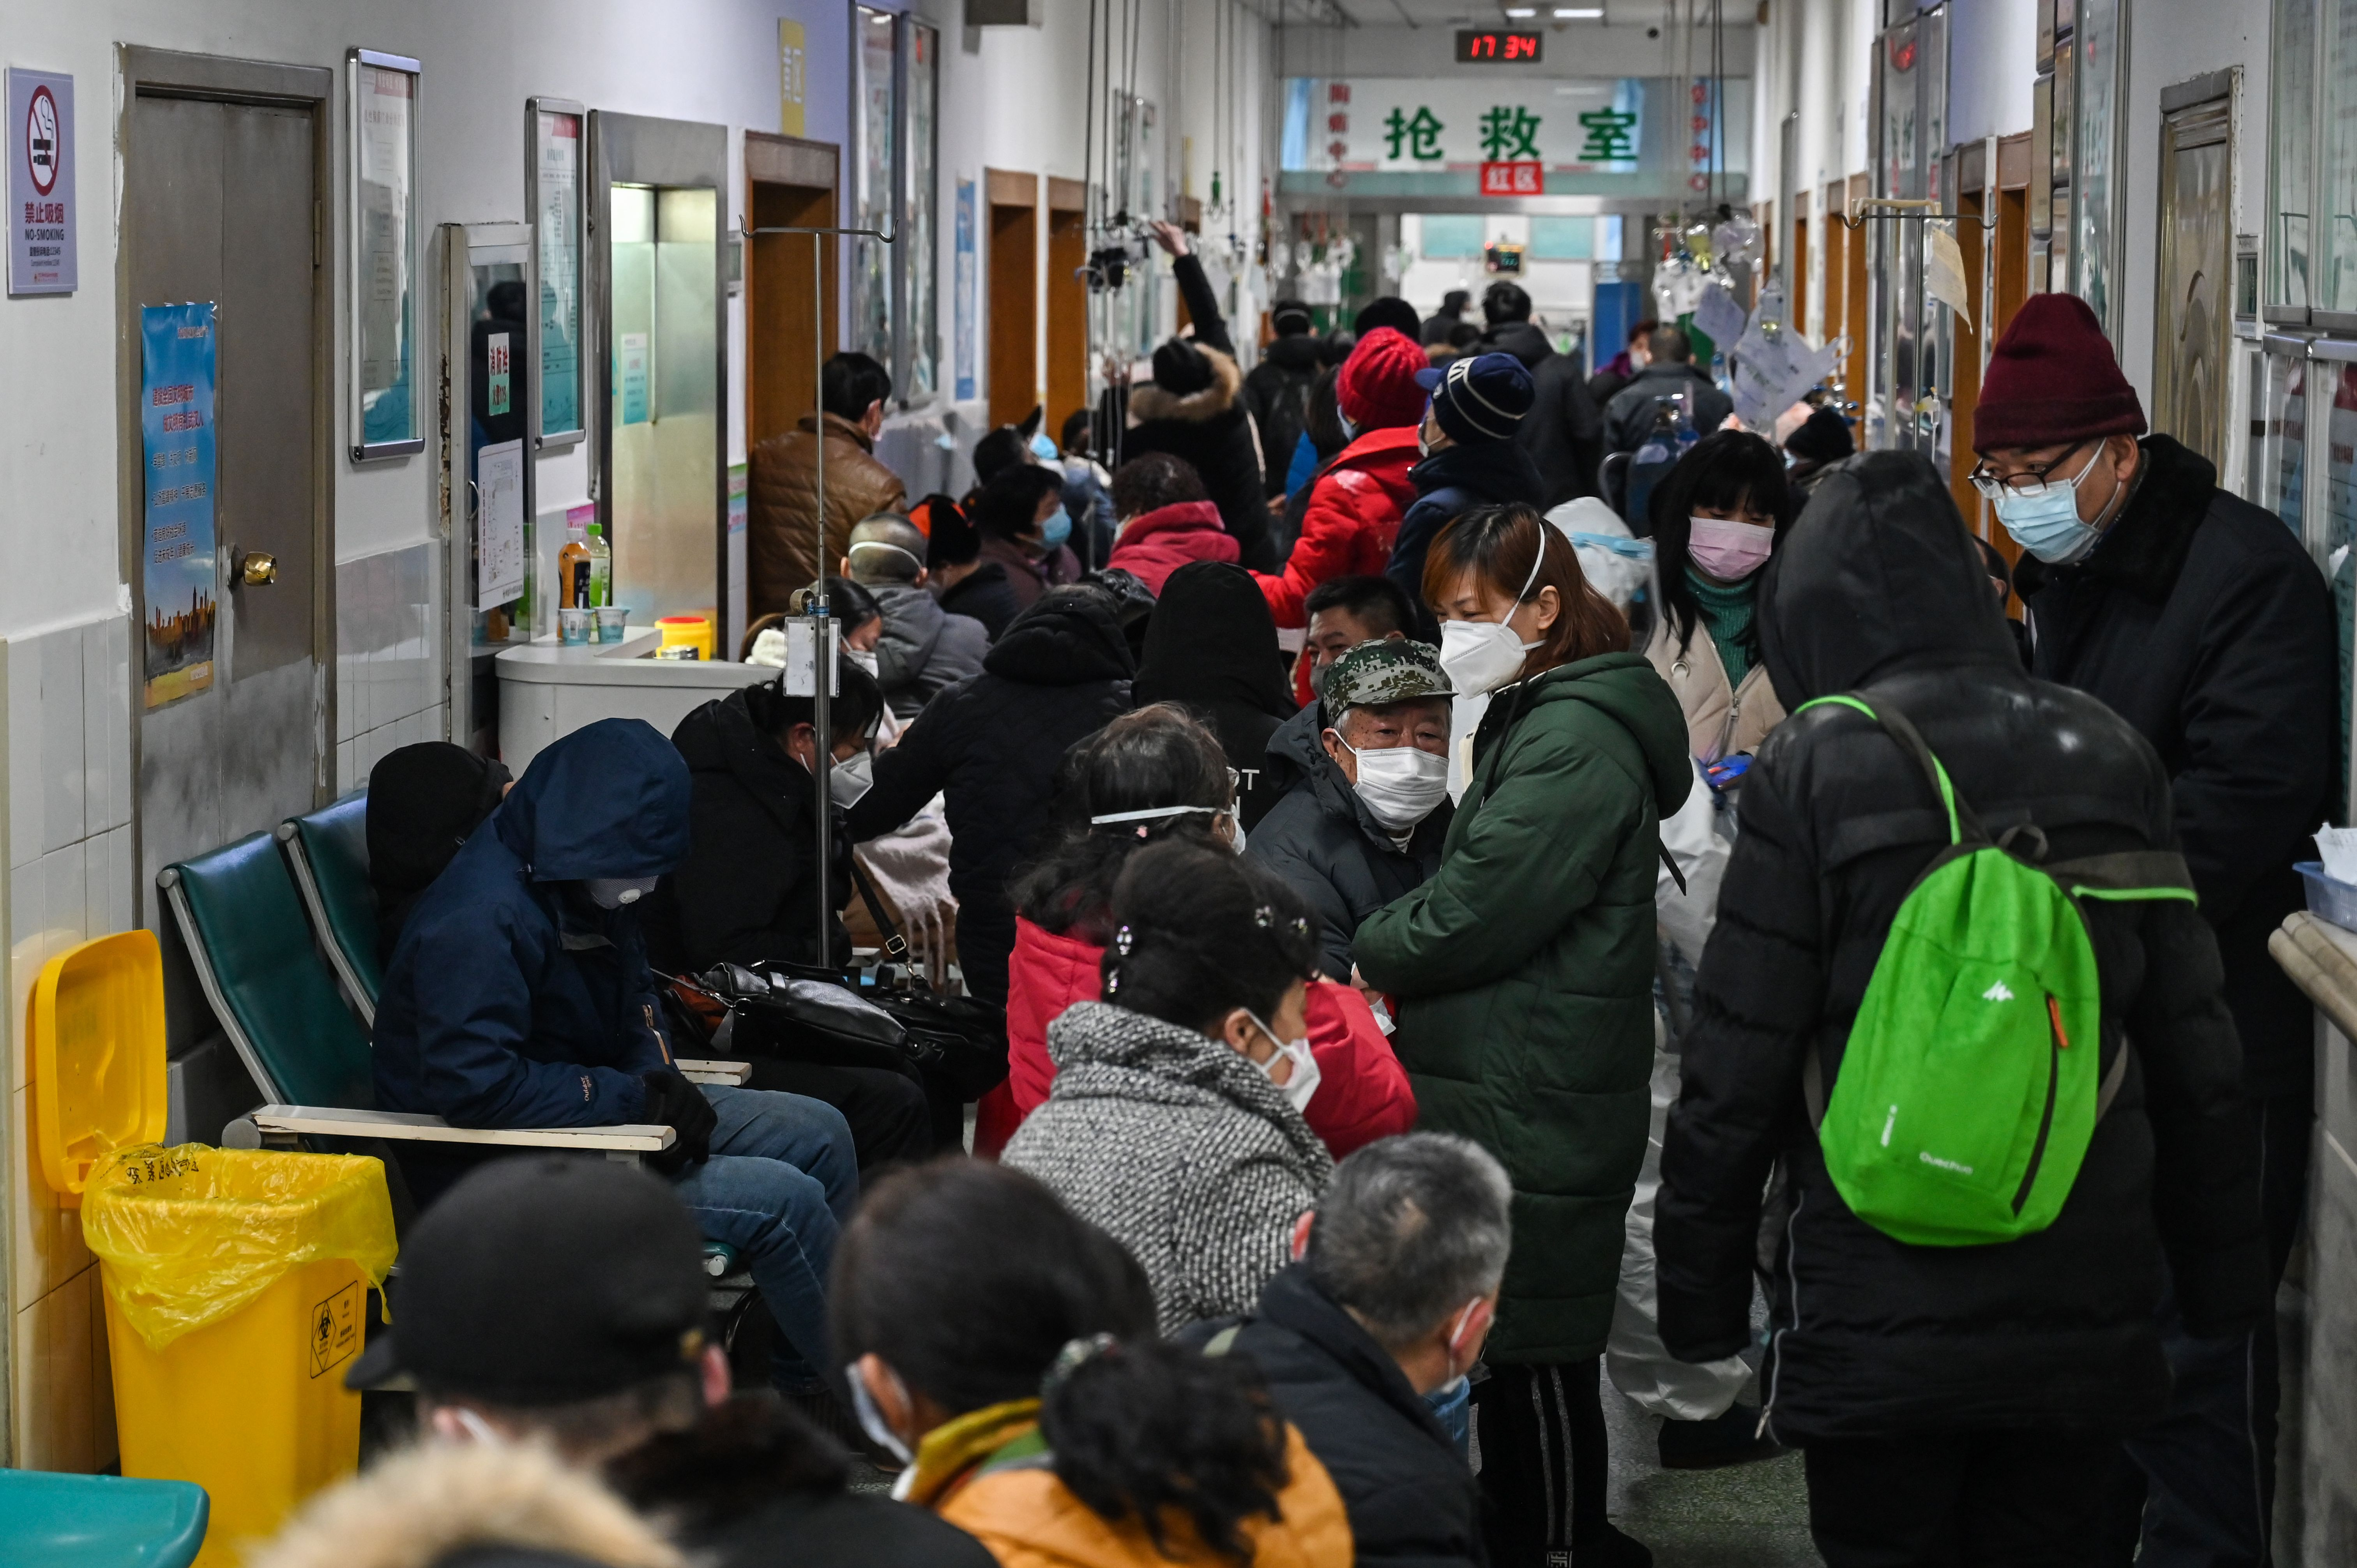 People wearing face masks wait for medical attention at Wuhan Red Cross Hospital in Wuhan onSaturday